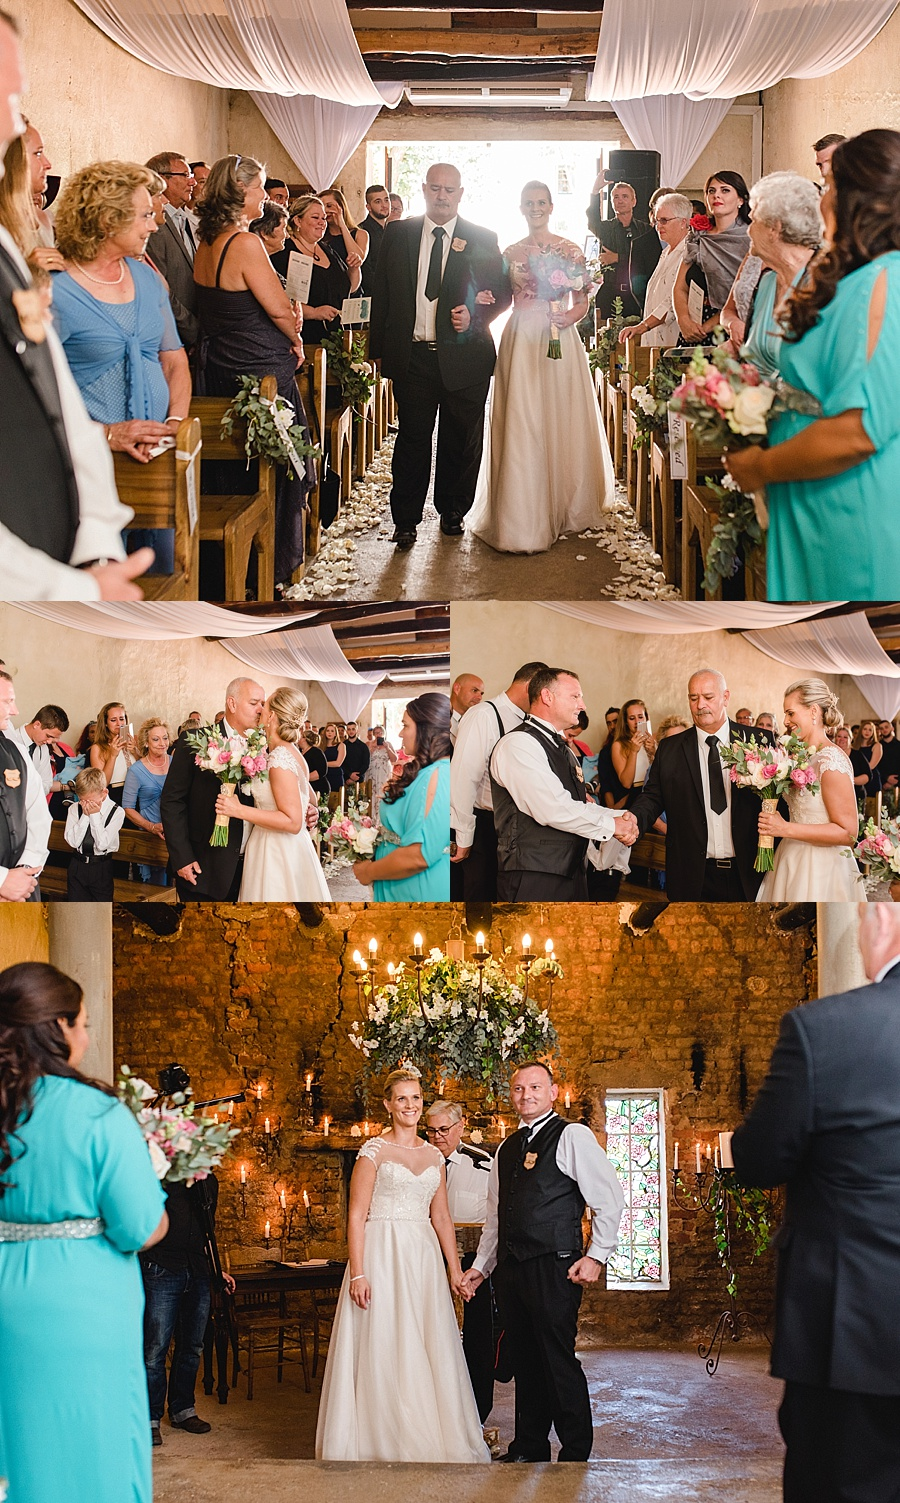 Darren Bester - Wedding Photographer - Langkloof Roses - Lauren + Shannon_0047.jpg